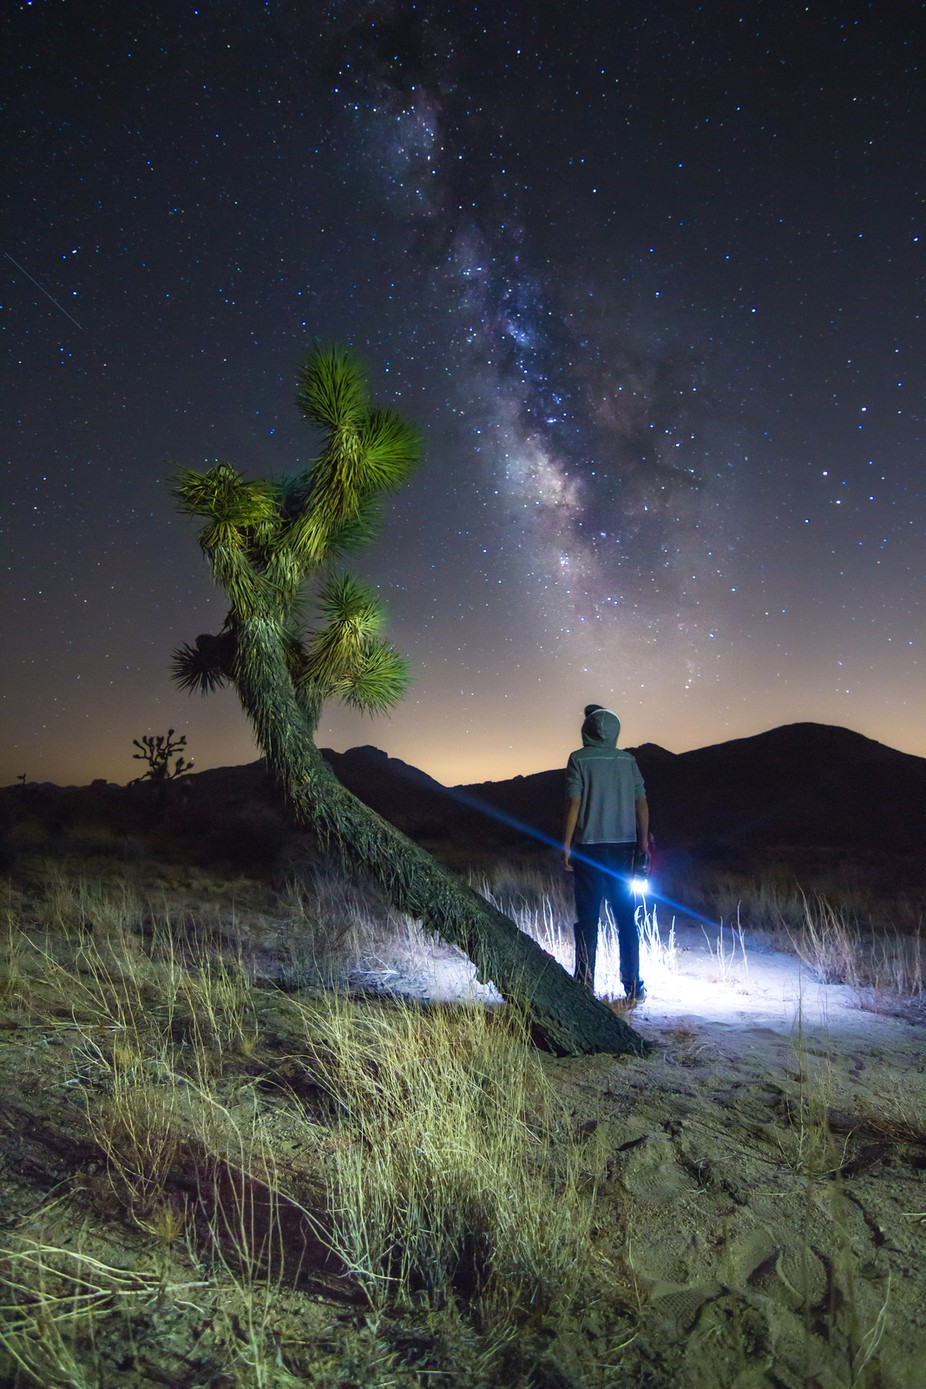 Take Me To The Upside Down by s_cavazos - People At Night Photo Contest